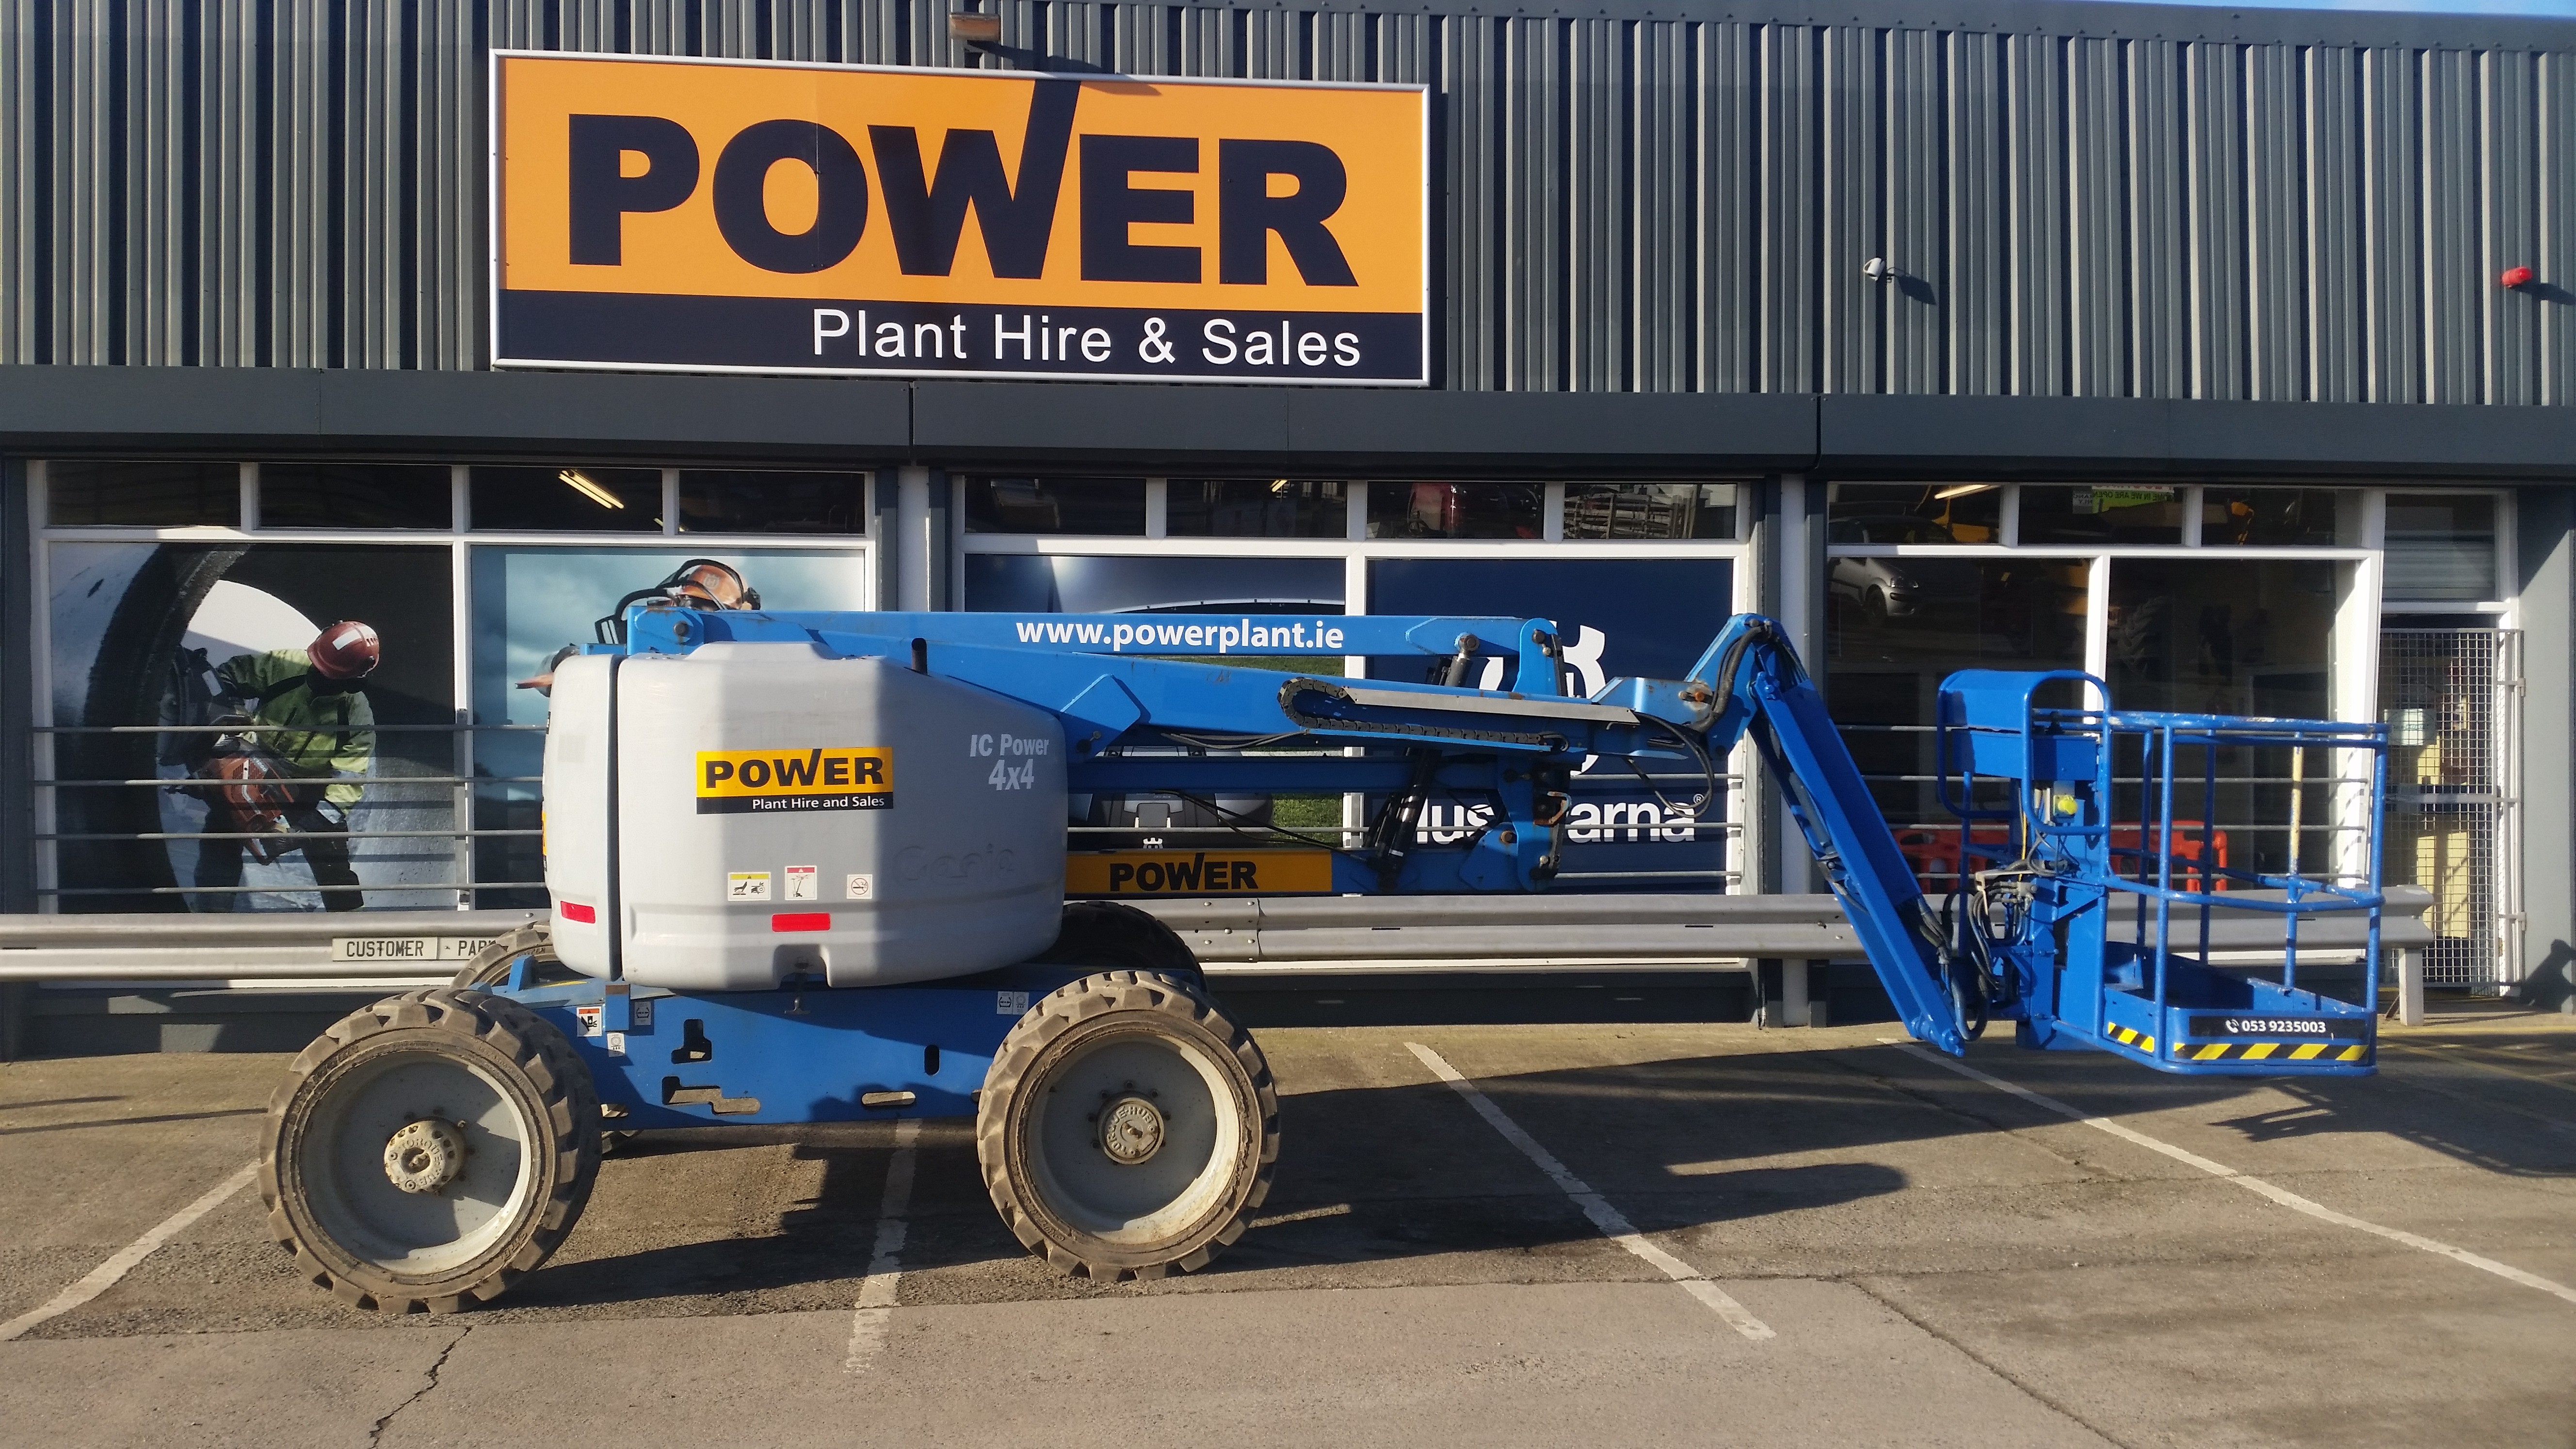 Power Plant Author at Power Plant Hire and Sales